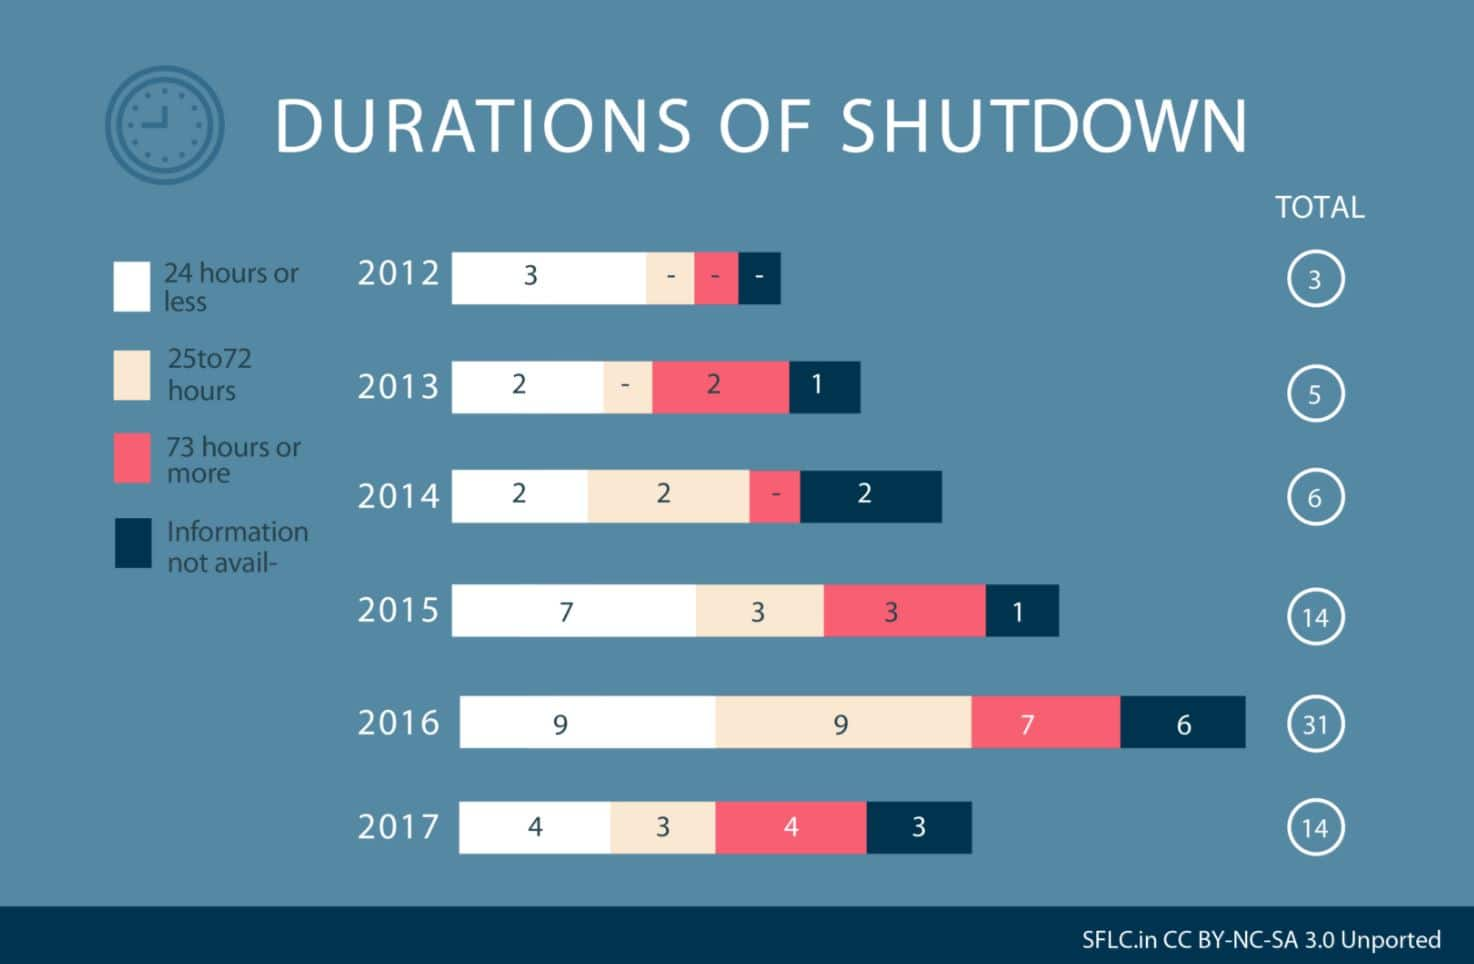 Durtations of shutdown